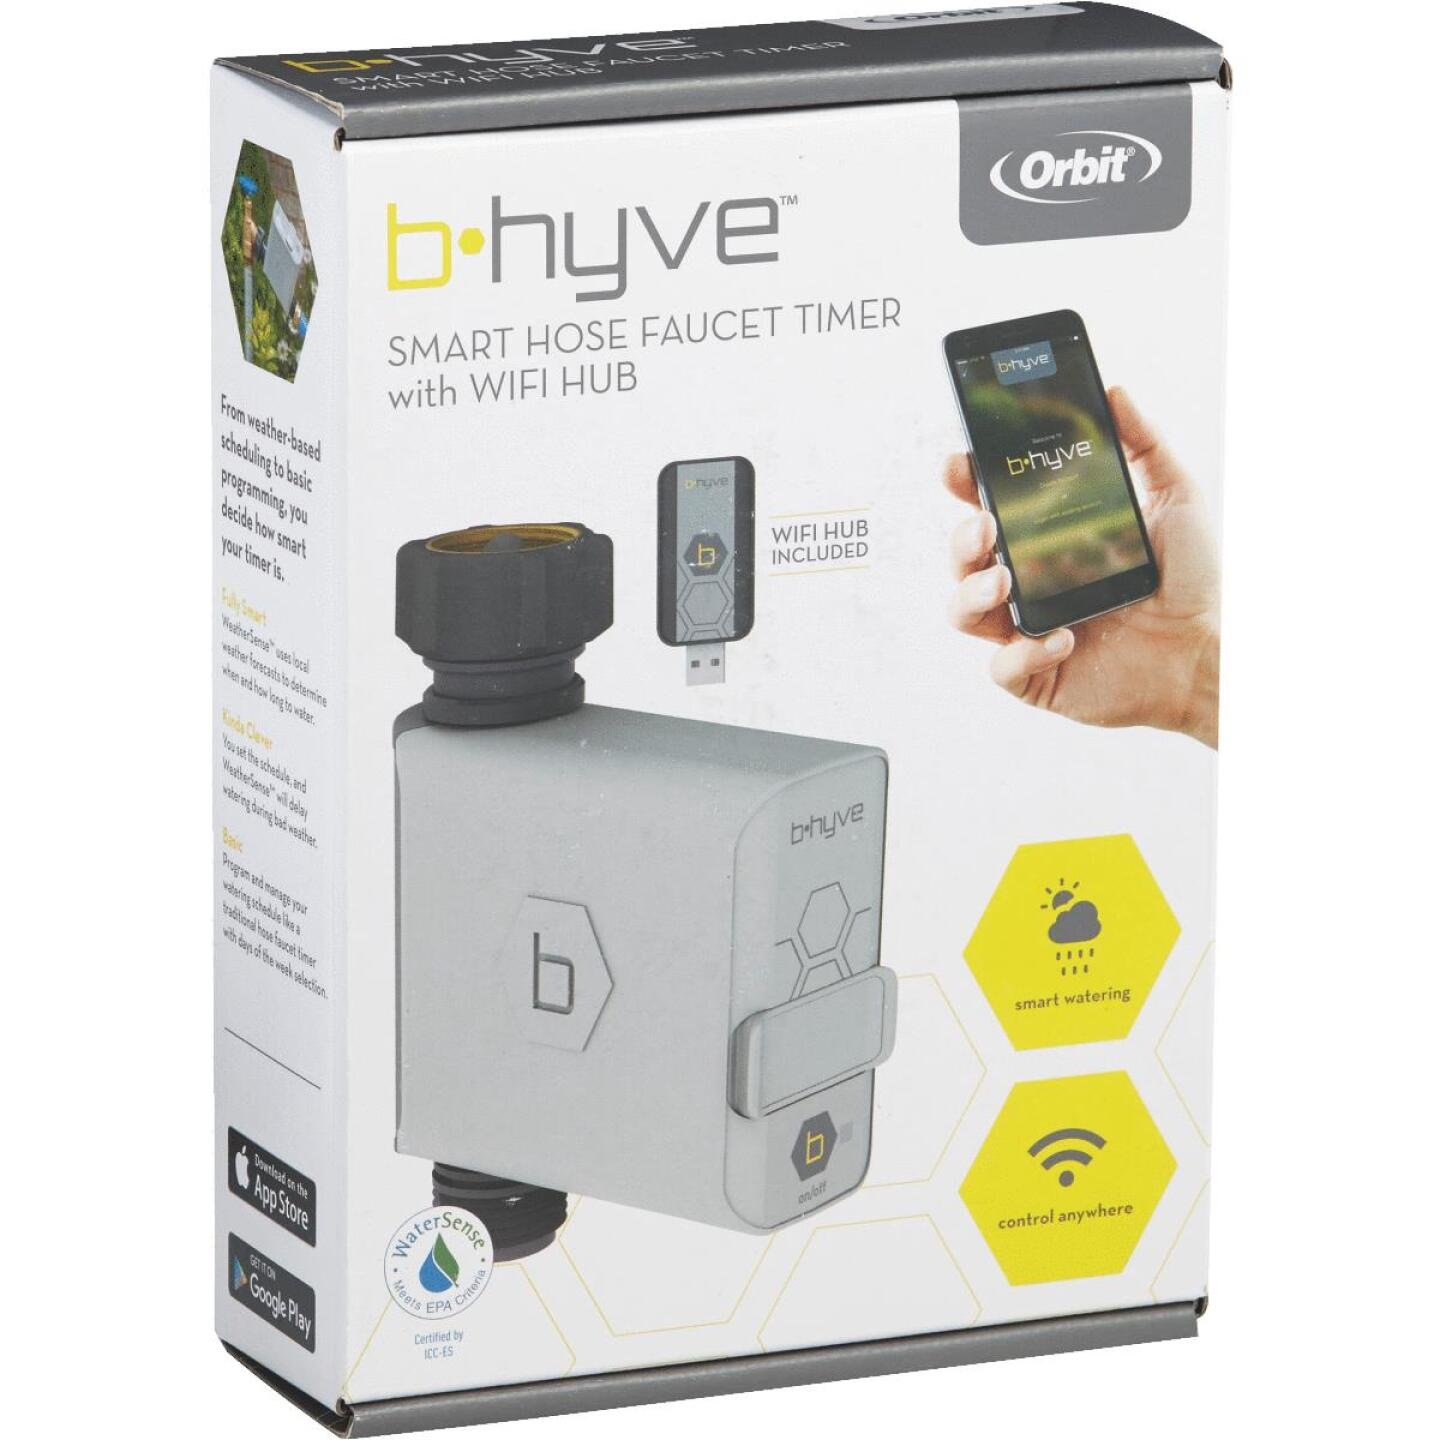 Orbit B-Hyve Electronic 1-Zone Water Timer Image 4